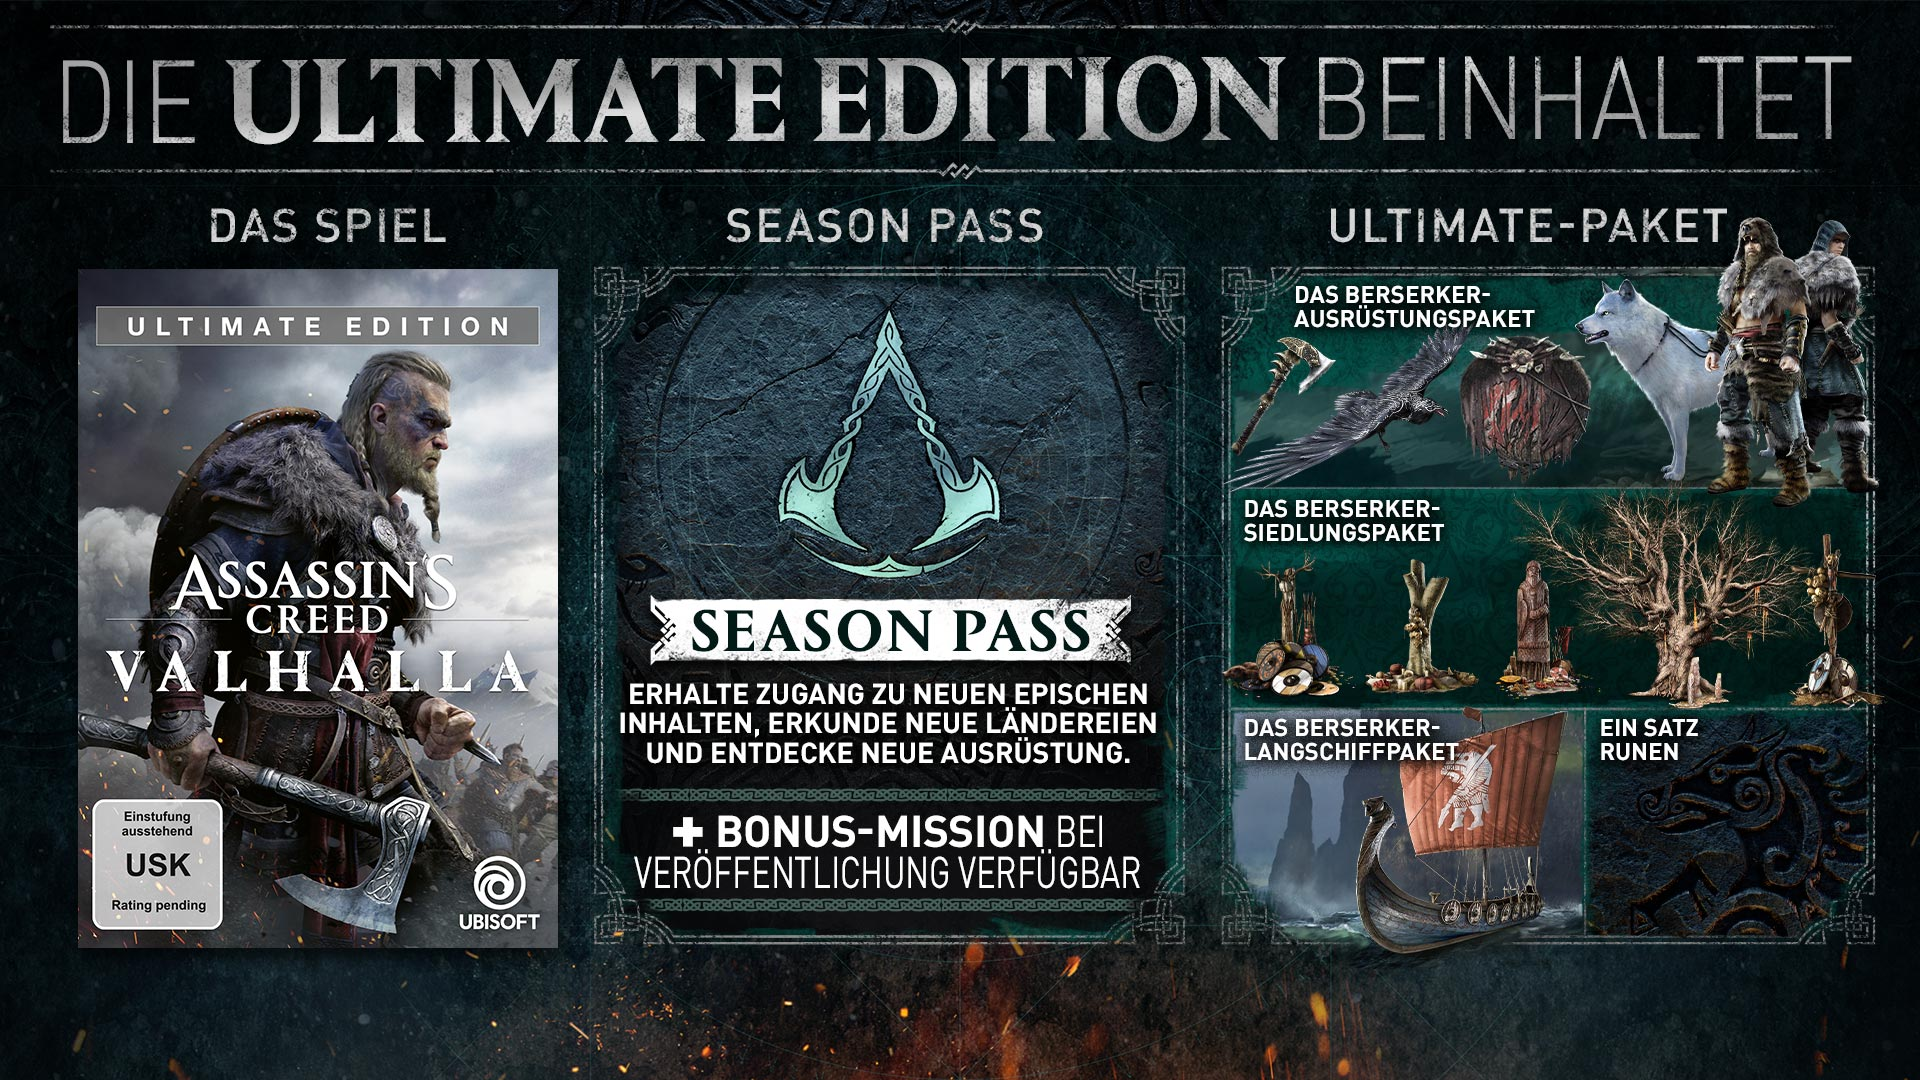 Assassins-Creed-Valhalla-Ultimate-Edition-pc-games.jpg